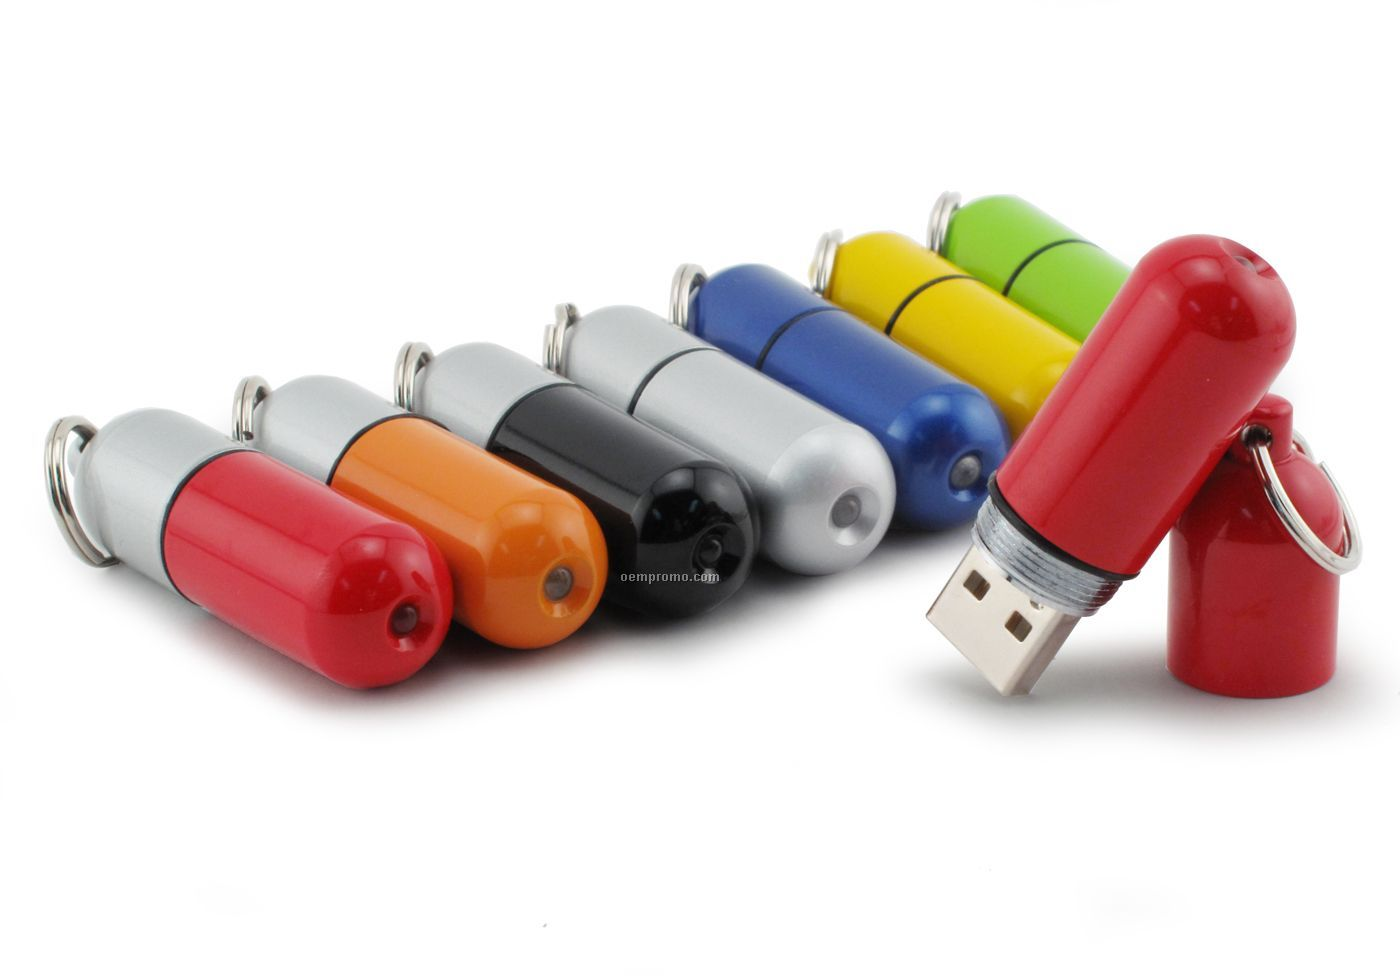 1 Gb Specialty 300 Series USB Drive - Capsule